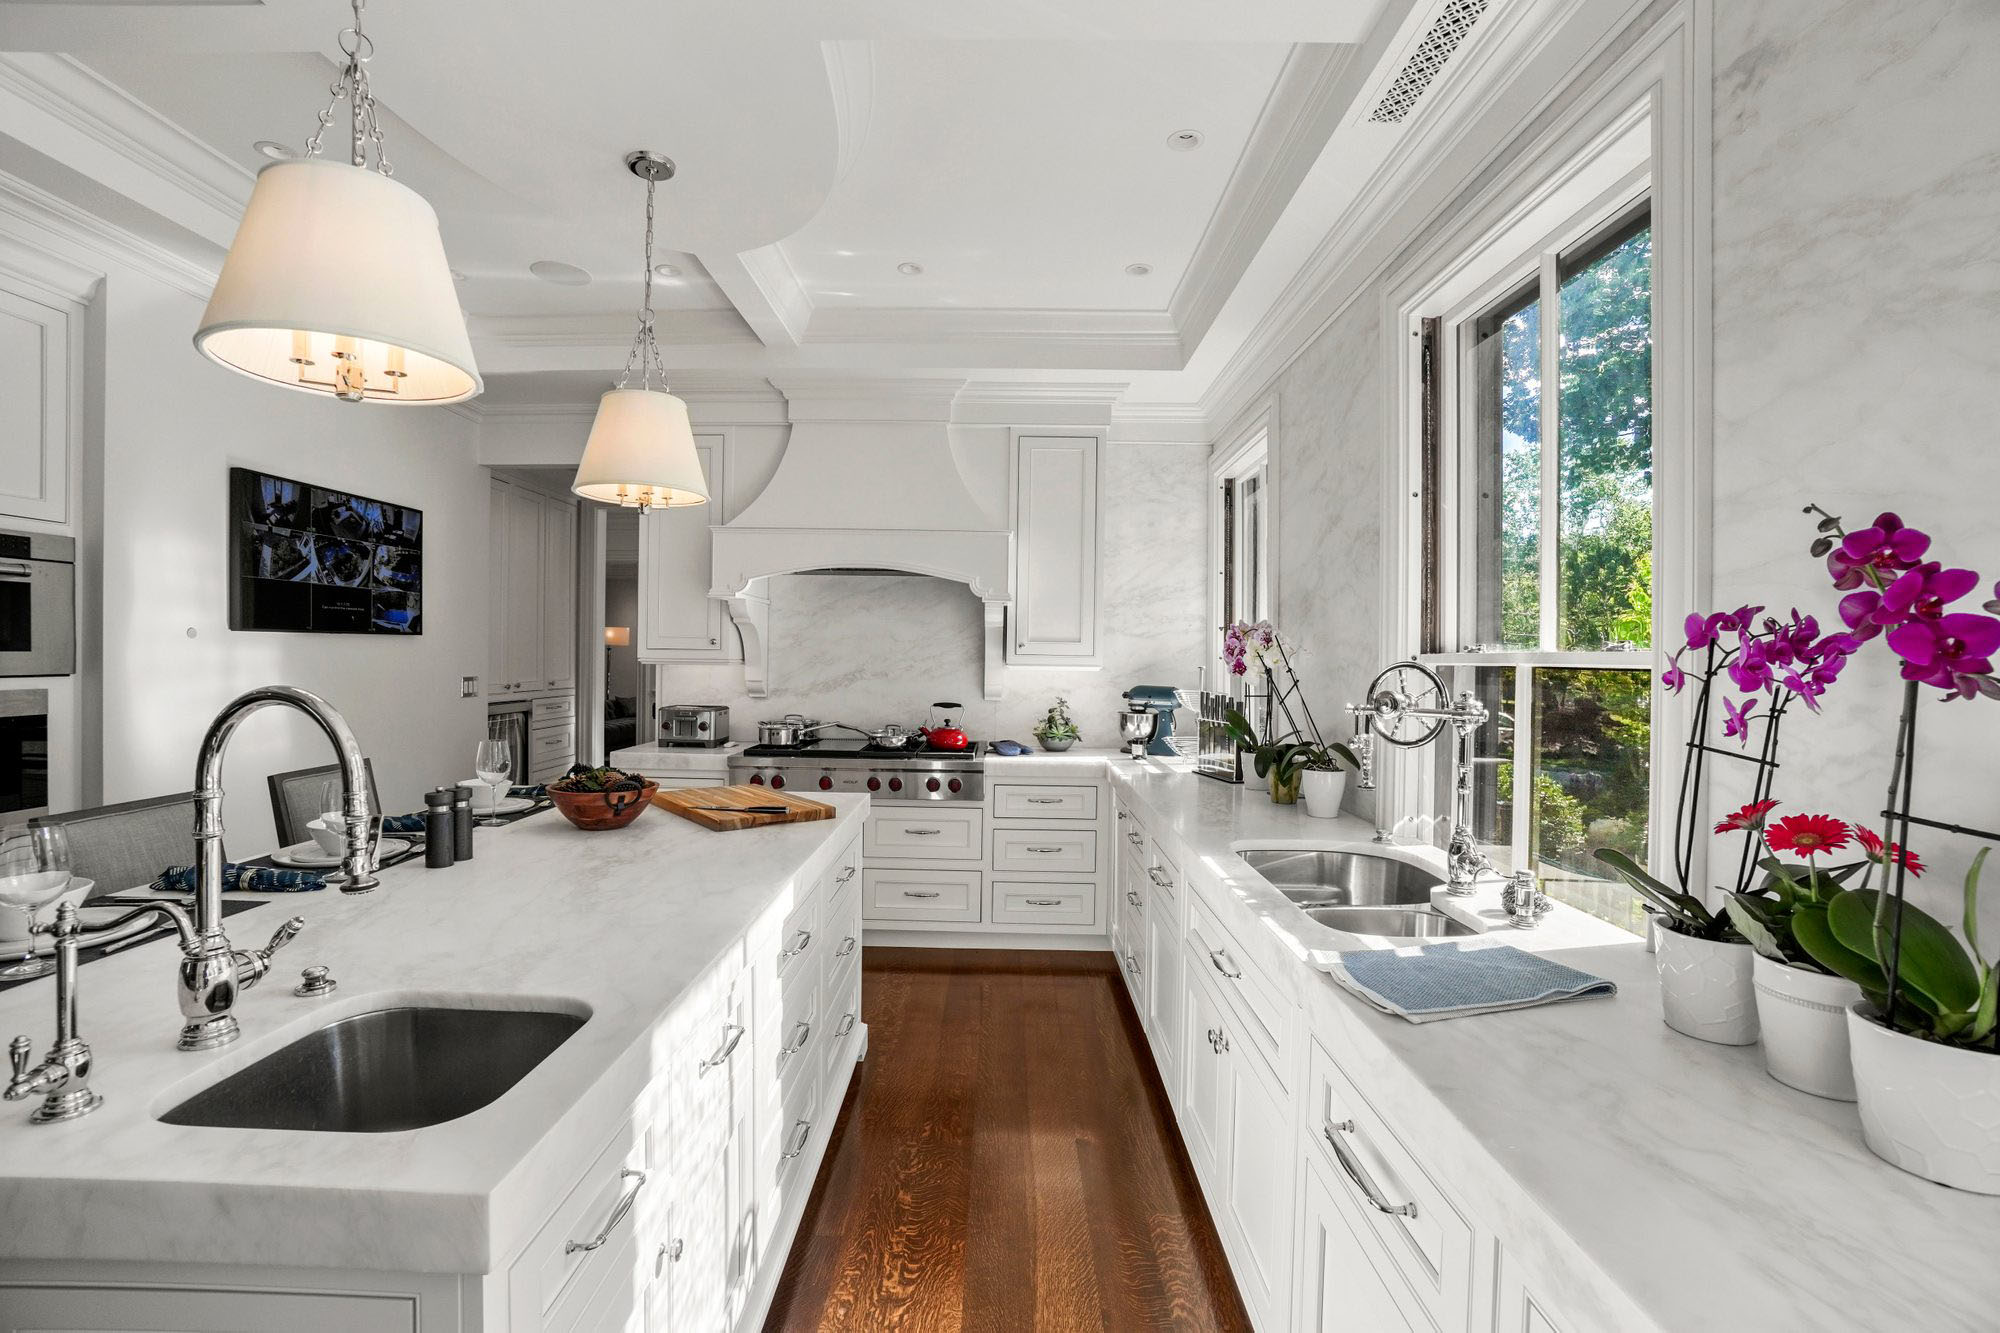 White and marble kitchen with rich brown hardwood floors. Custom range hood.